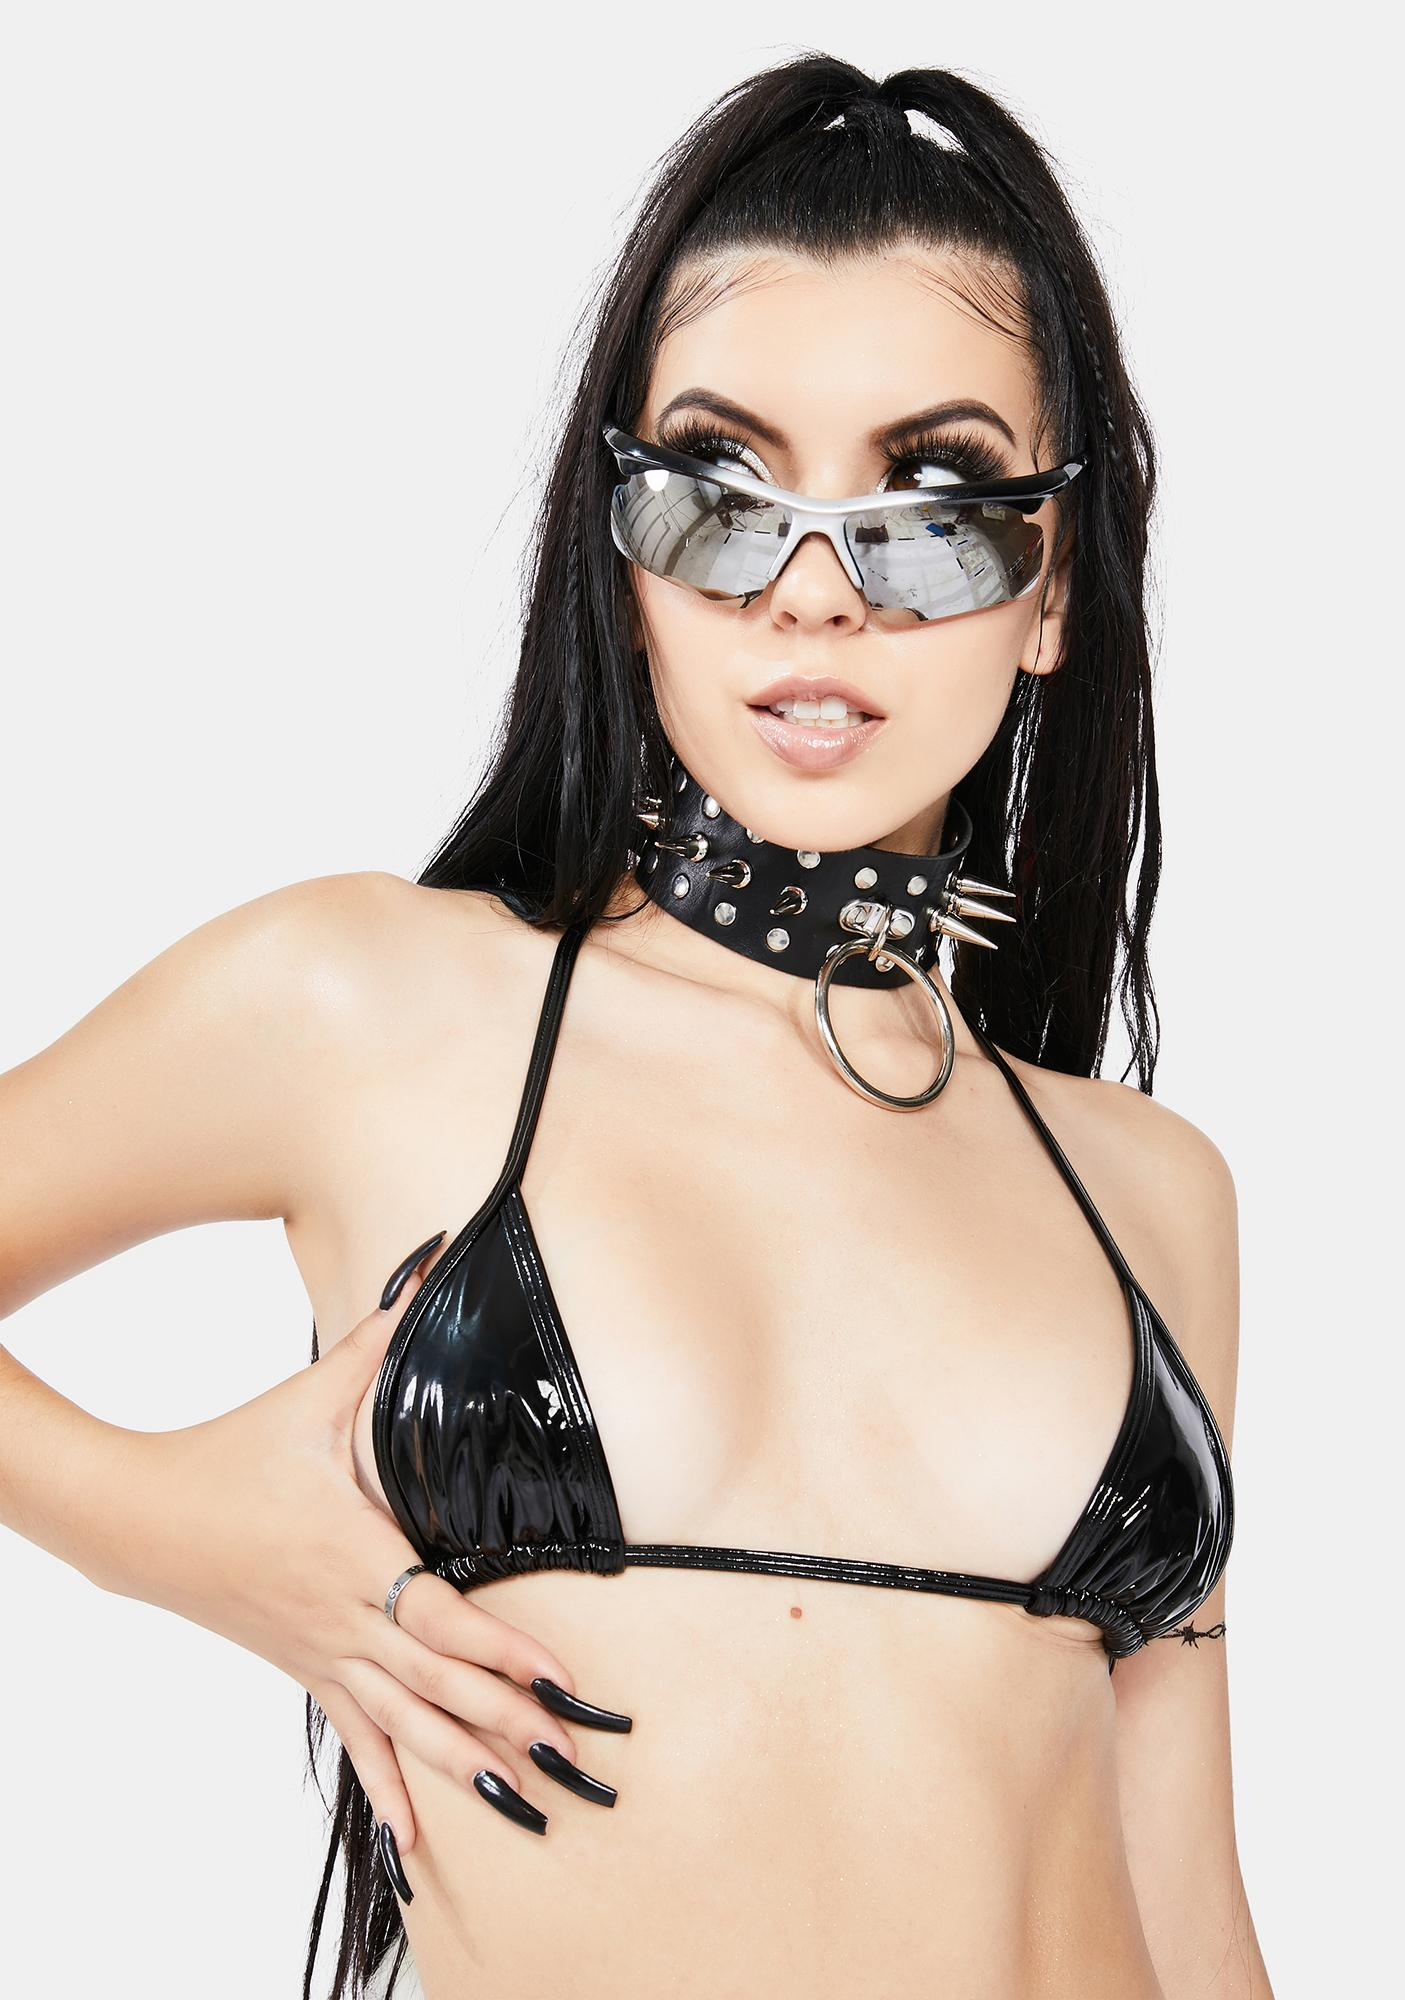 Debutante Intimates Berlin PVC Heaven Sent Bikini Top